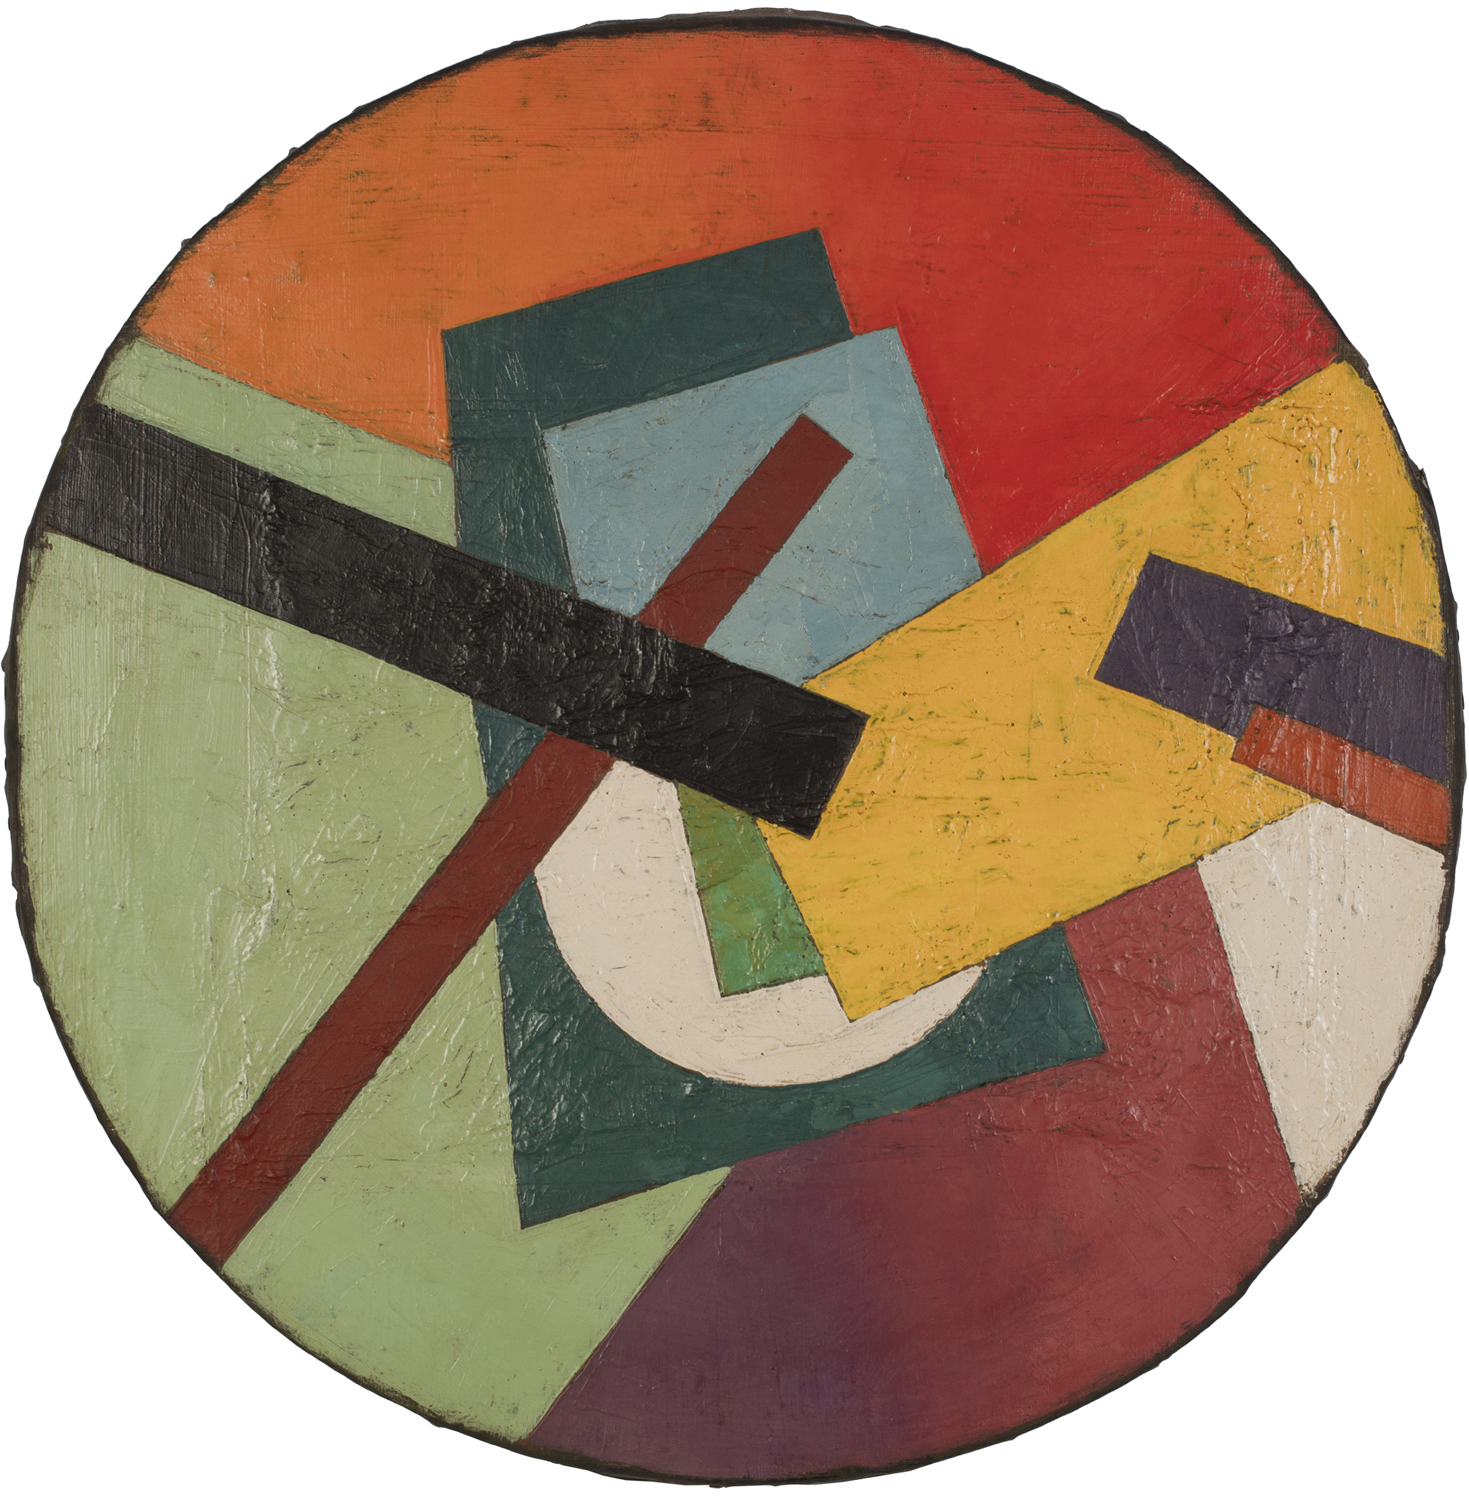 """Unattributed. Unsigned.In the style of Ivan Kliun. Text in Russian on reverse translates to """"SUPREMAT SKETCH"""".Oil on canvas. 50 cm diameter."""